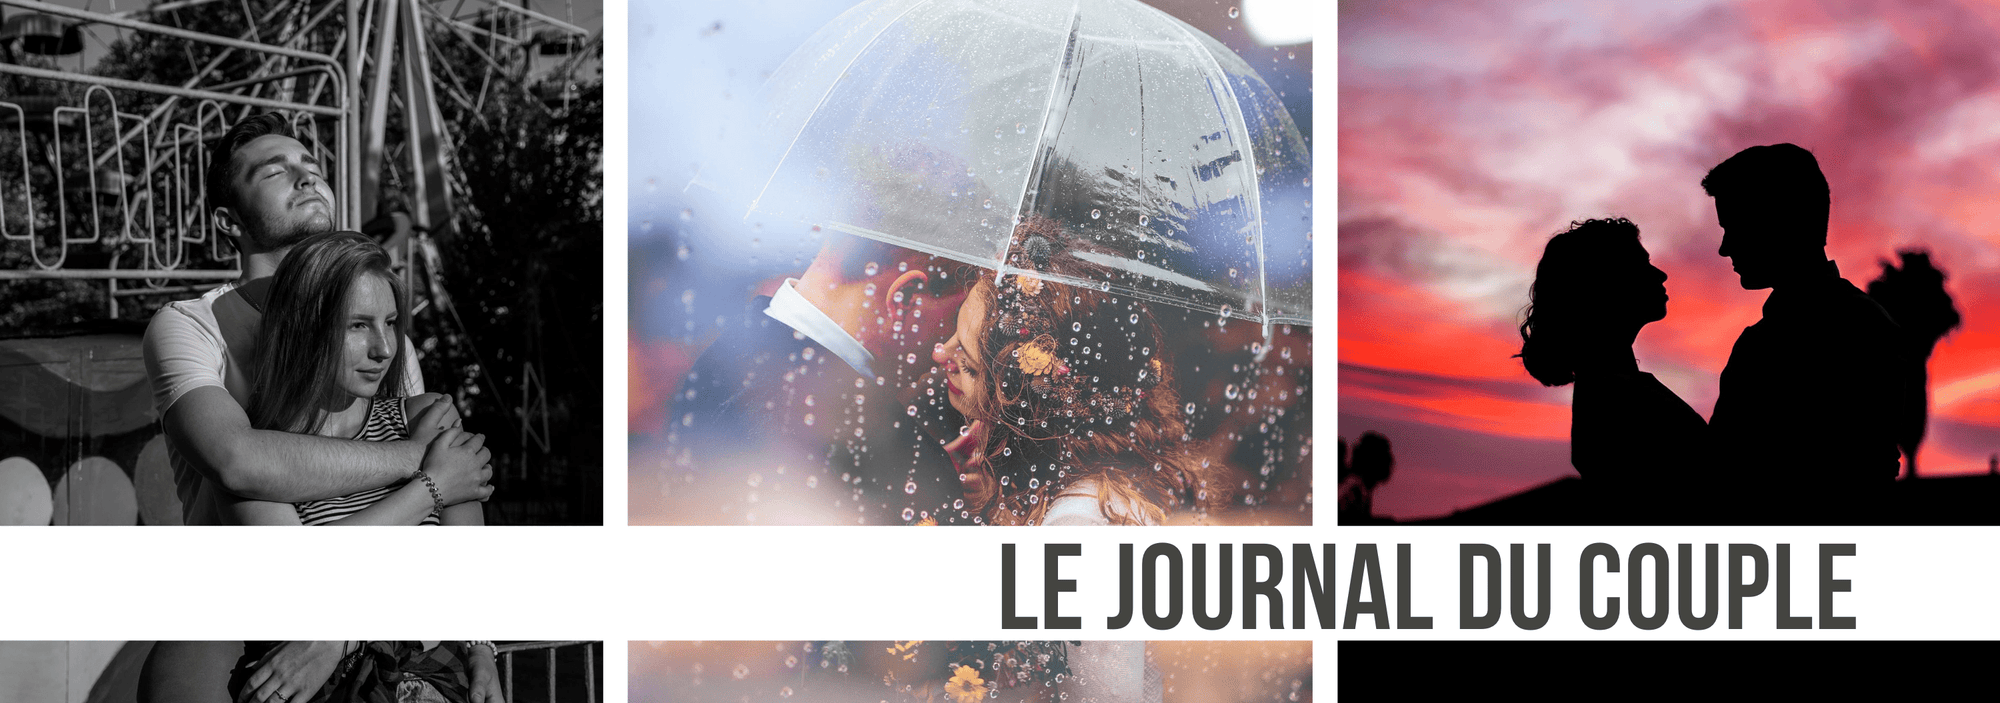 Blog Couple - Le Journal du Couple Insta-Couple